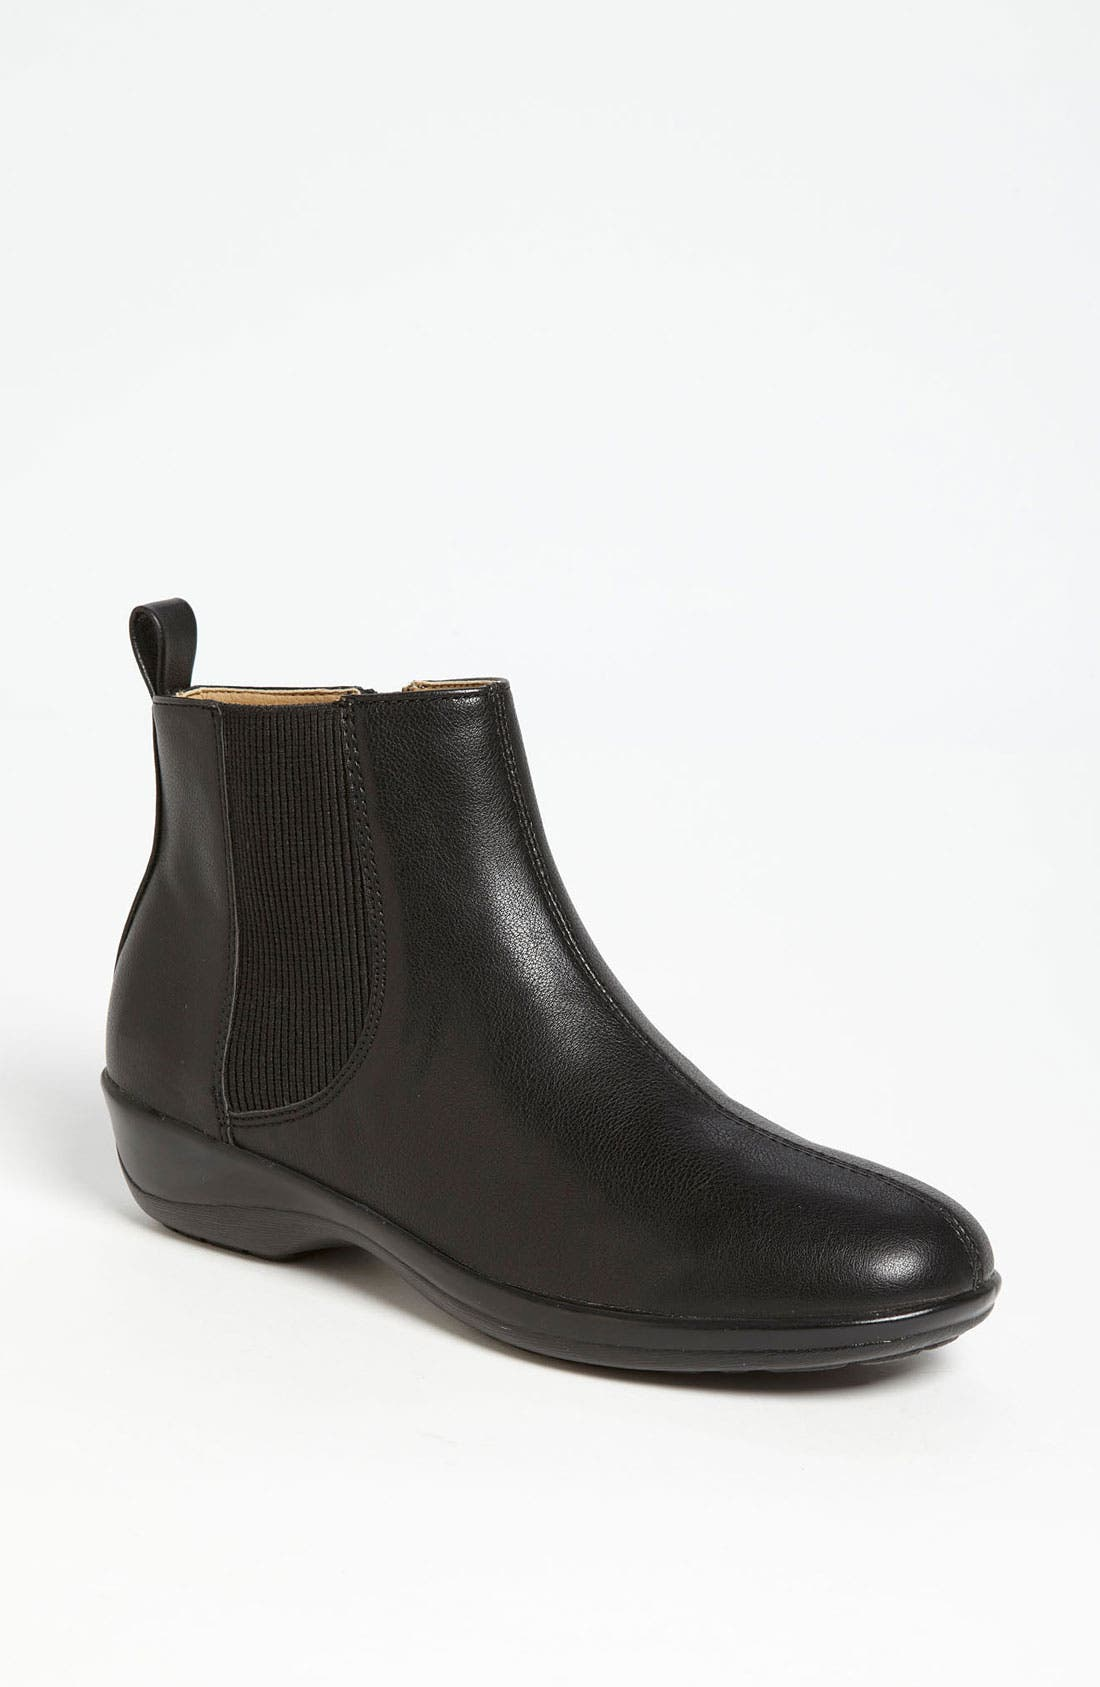 Main Image - Softspots 'Aggie' Bootie